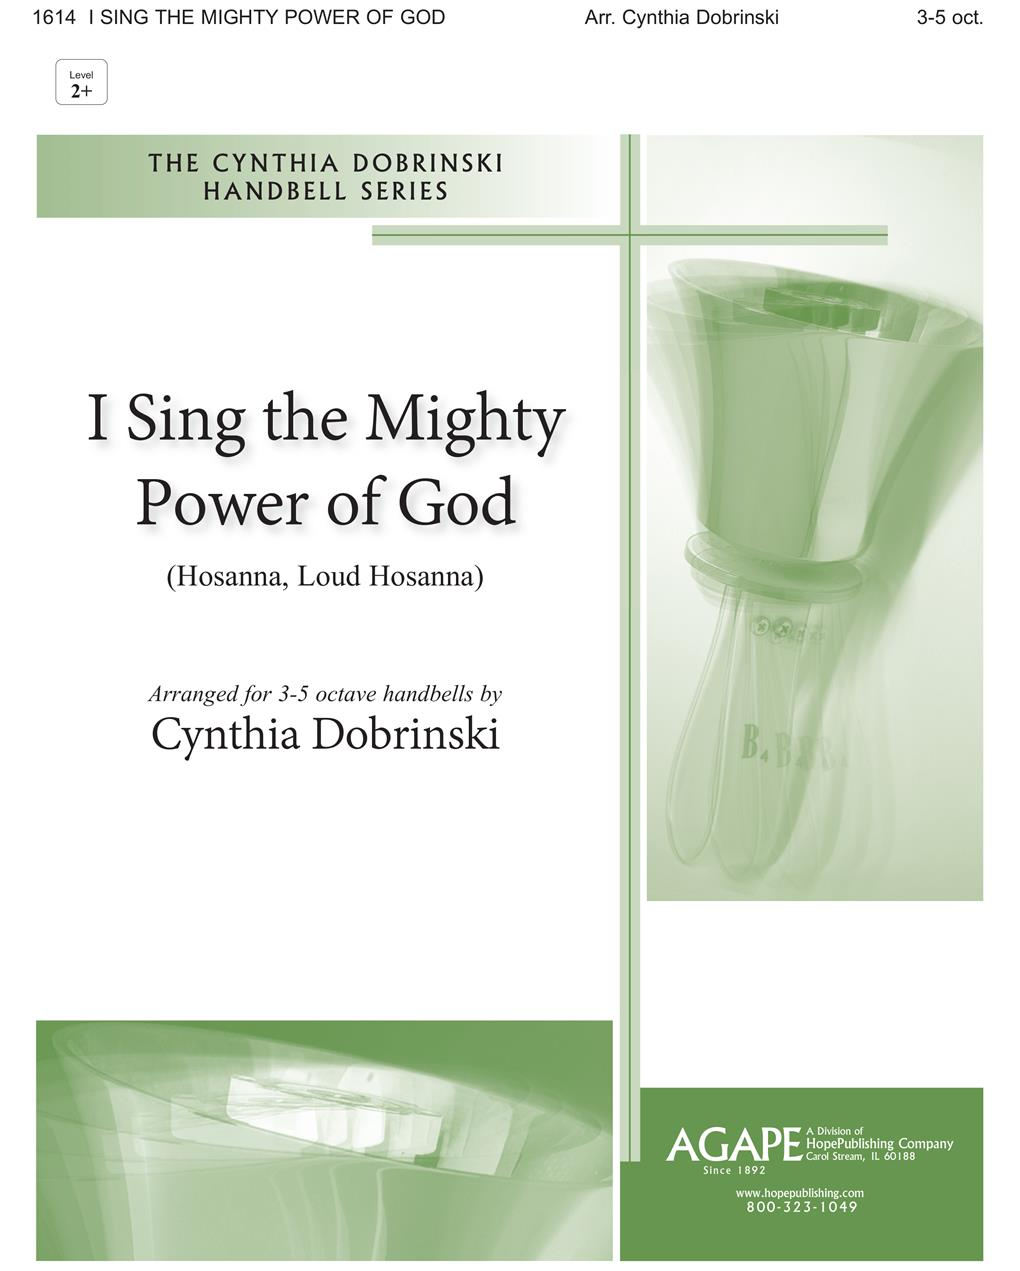 I Sing the Mighty Power of God - 3-5 Octave Cover Image